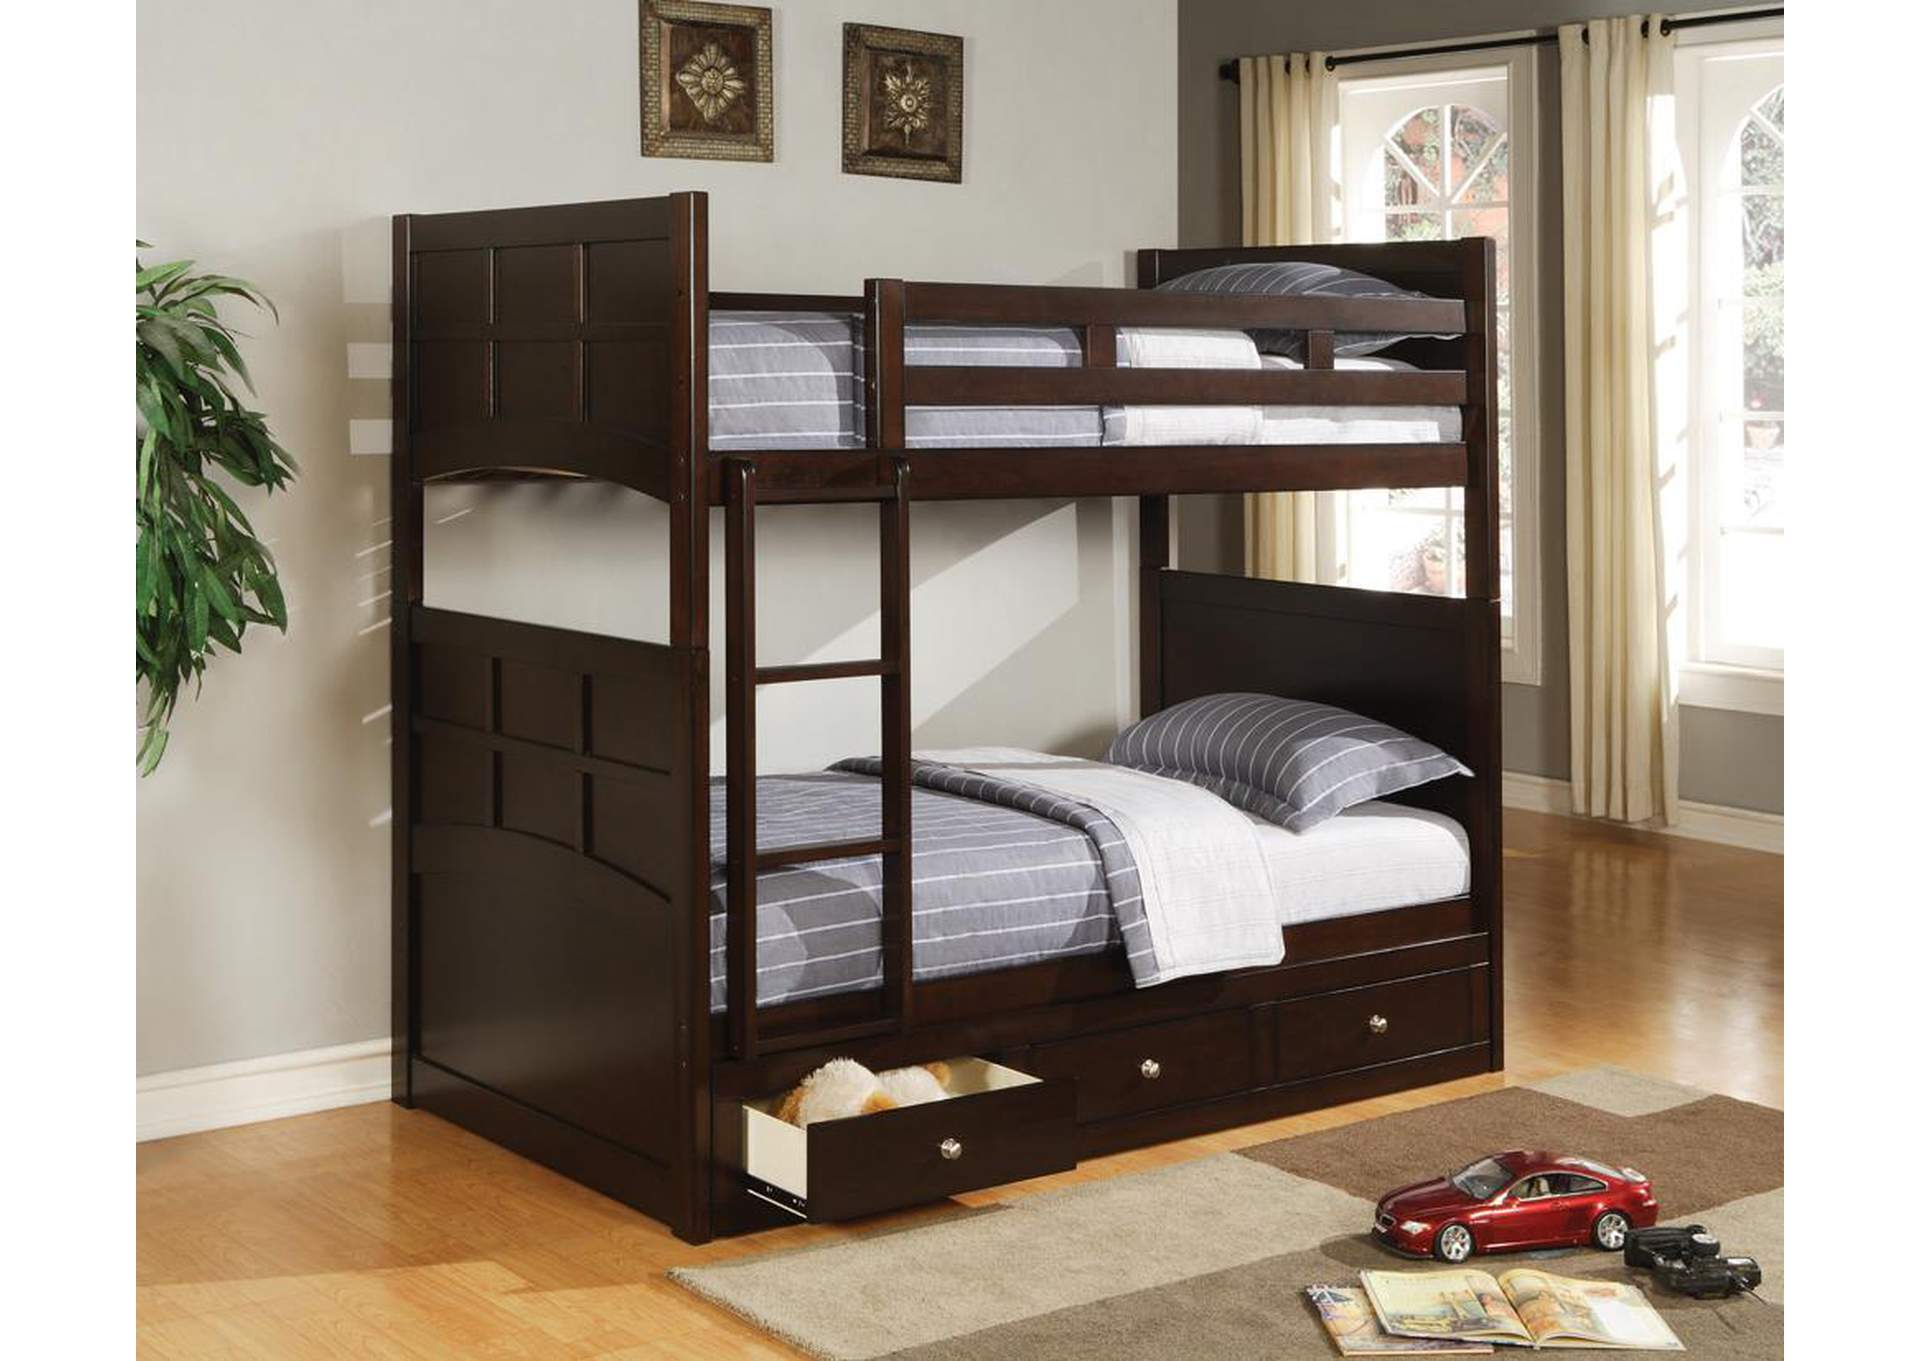 Jasper Cappuccino Twin Bunk Bed,Coaster Furniture